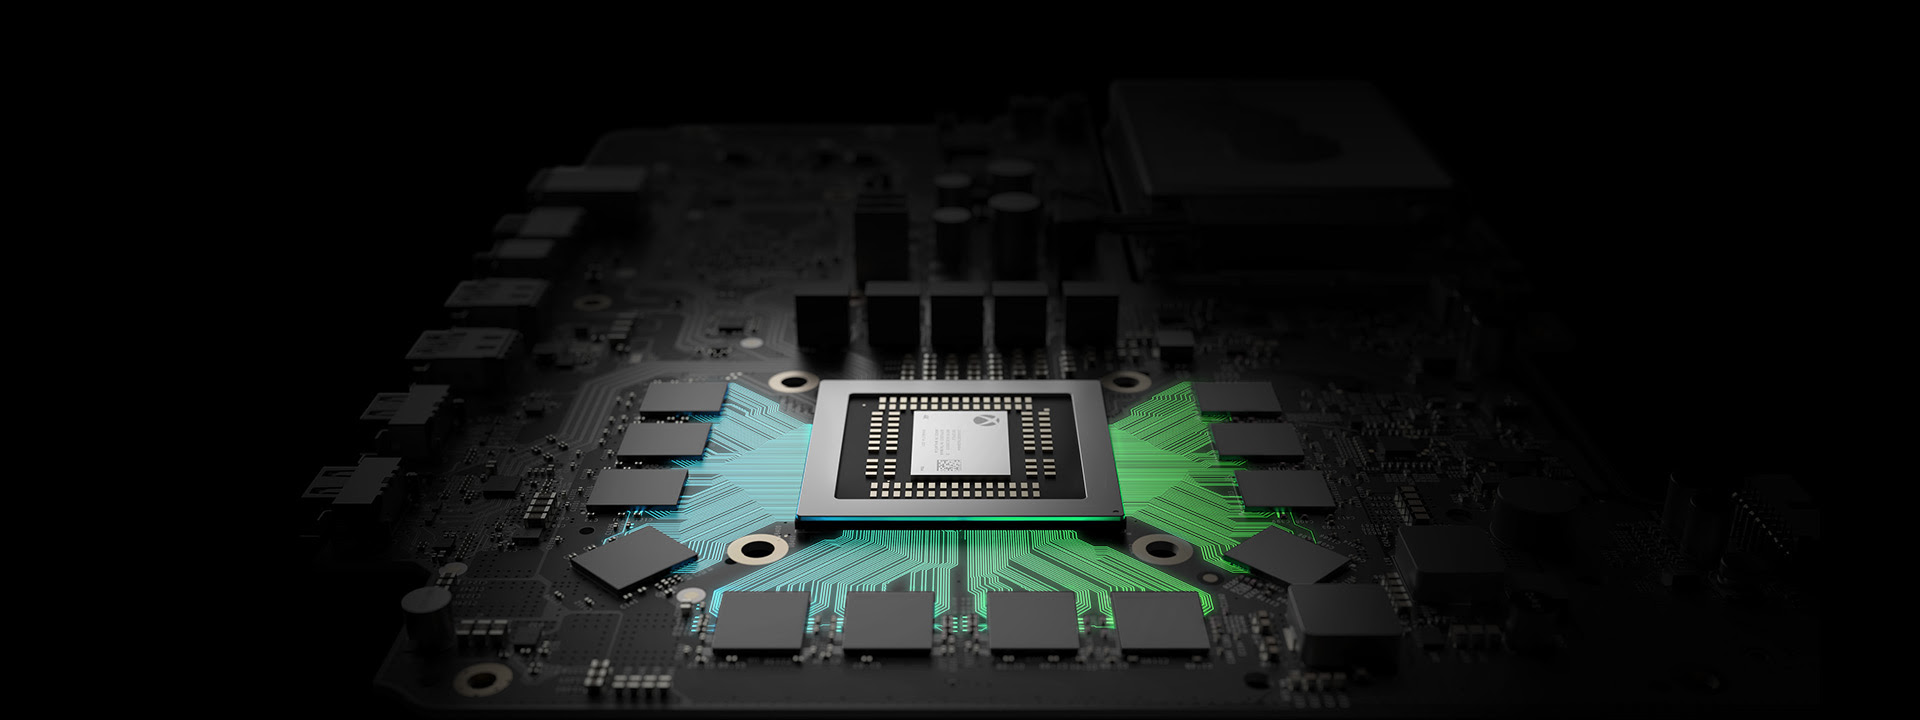 Xbox Scorpio is a lock for $499 according to Geoff Keighly screenshot